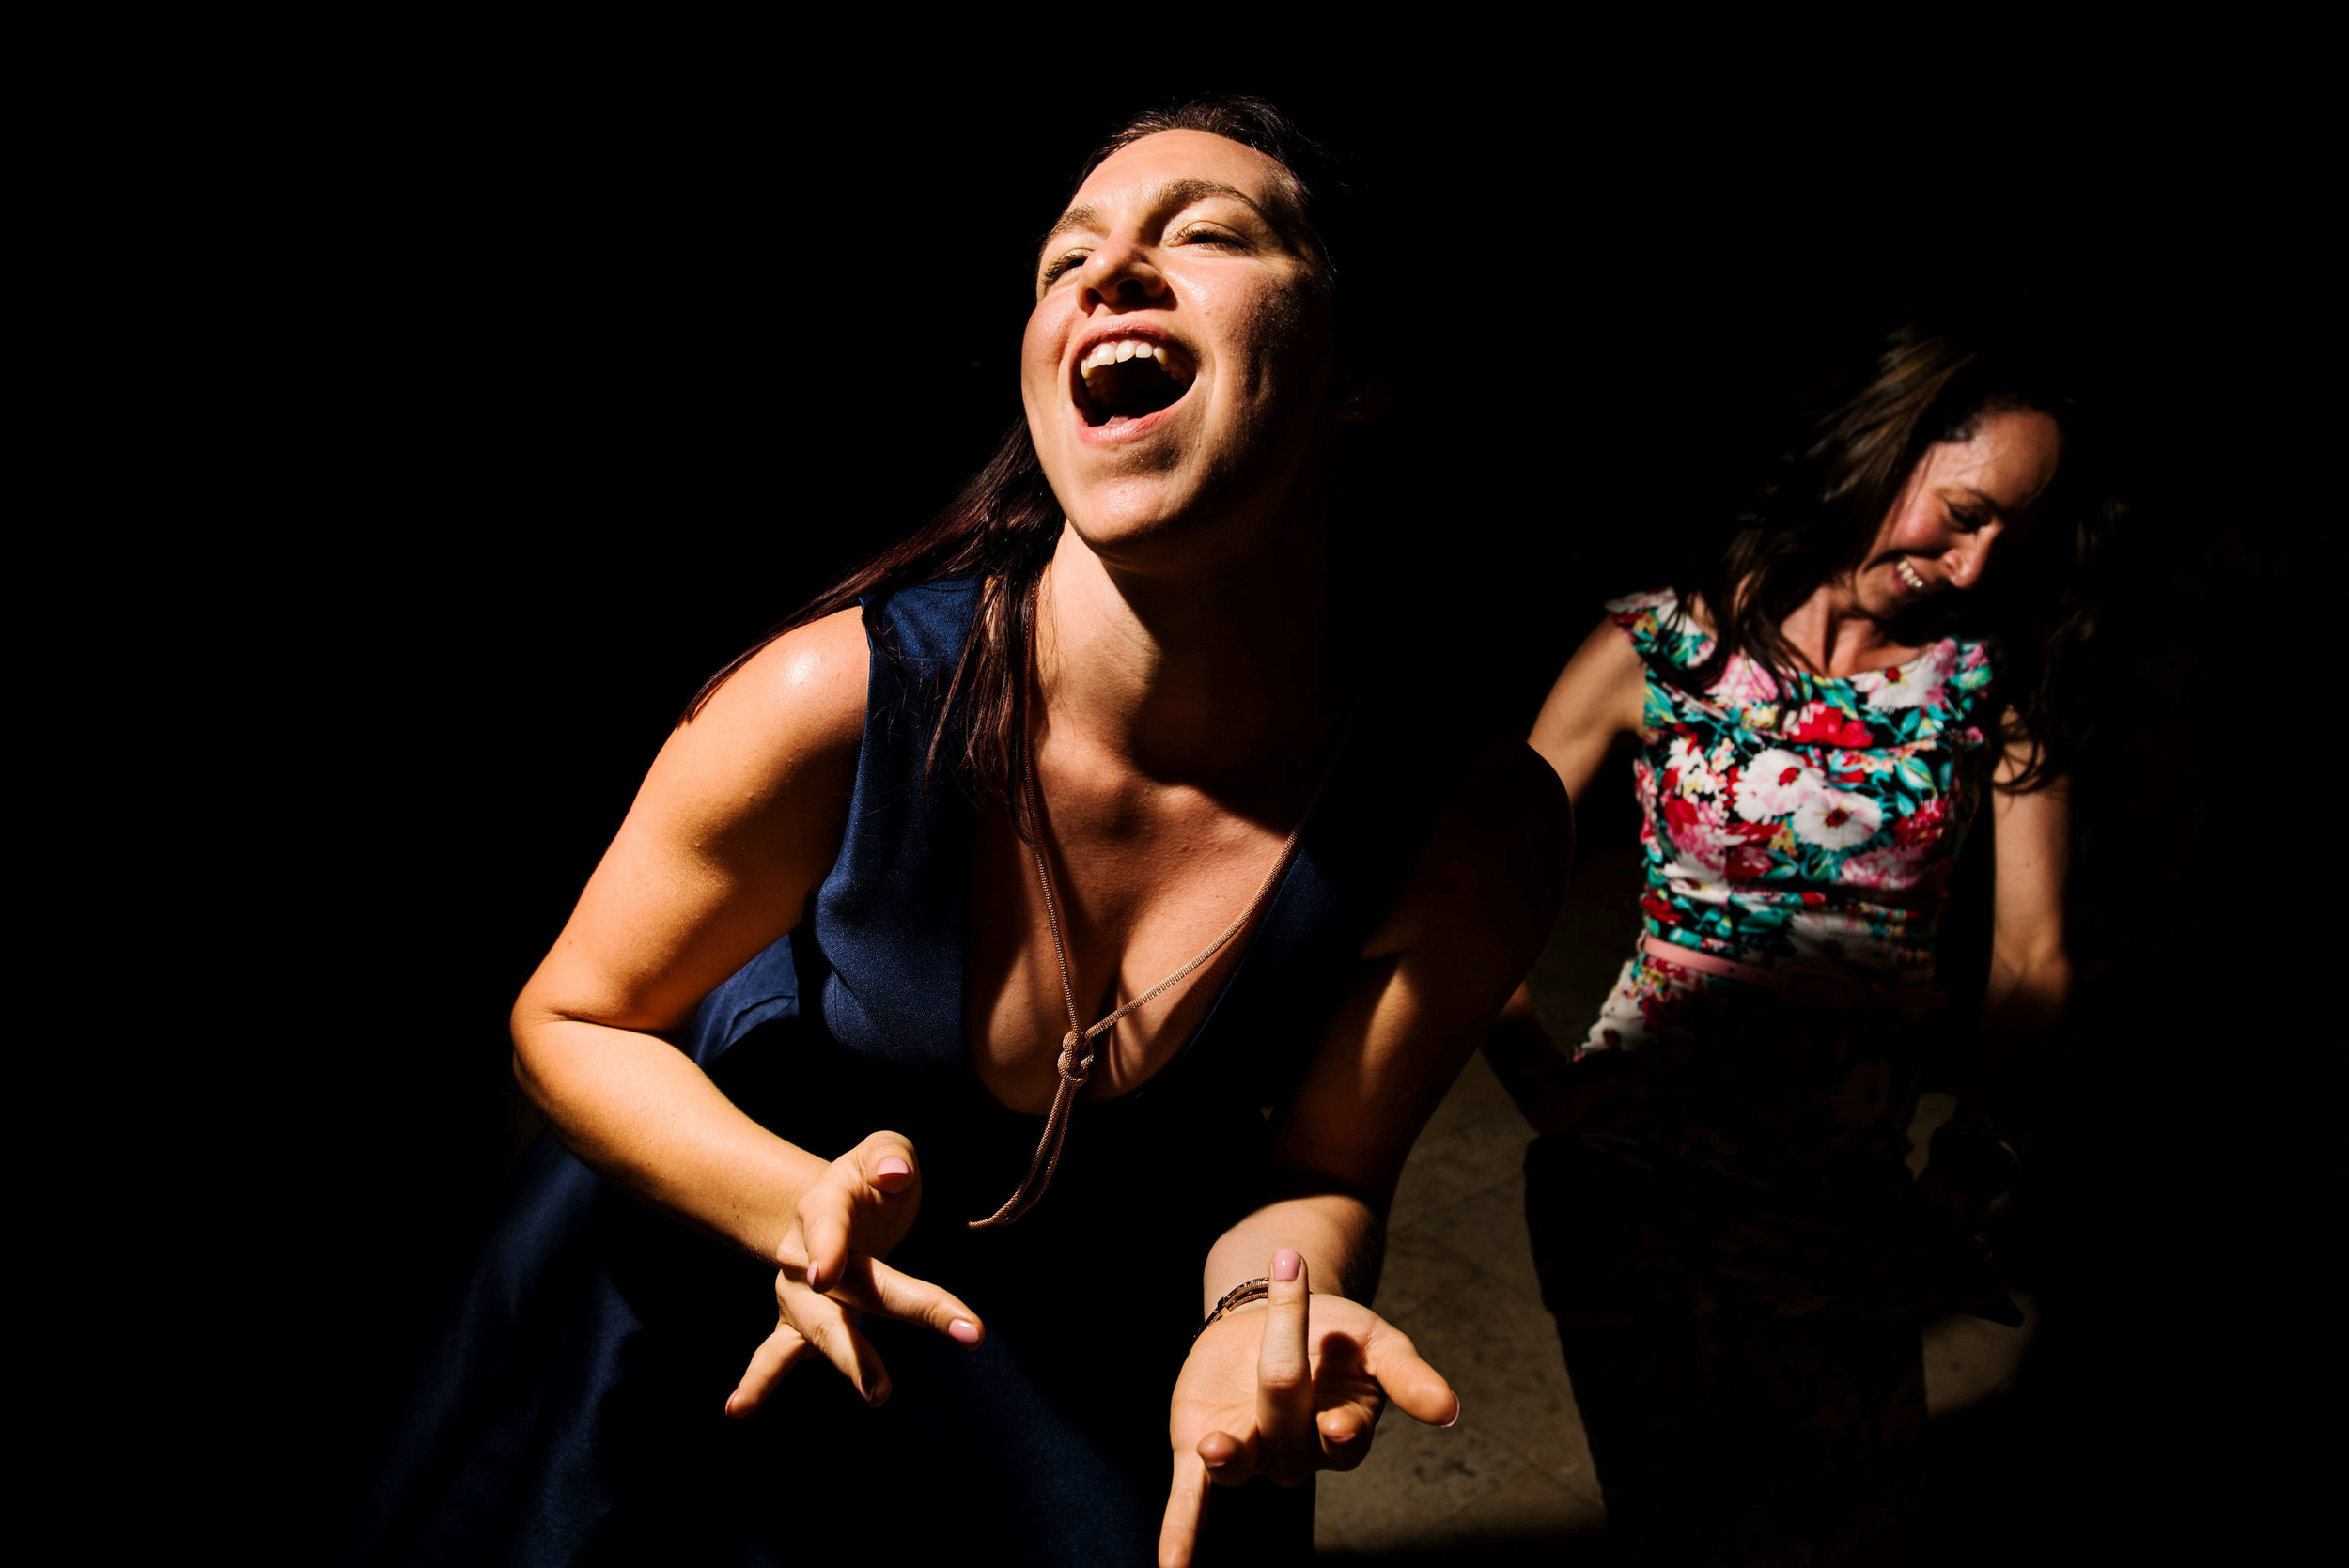 Woman laughing and playing air guitar at wedding reception